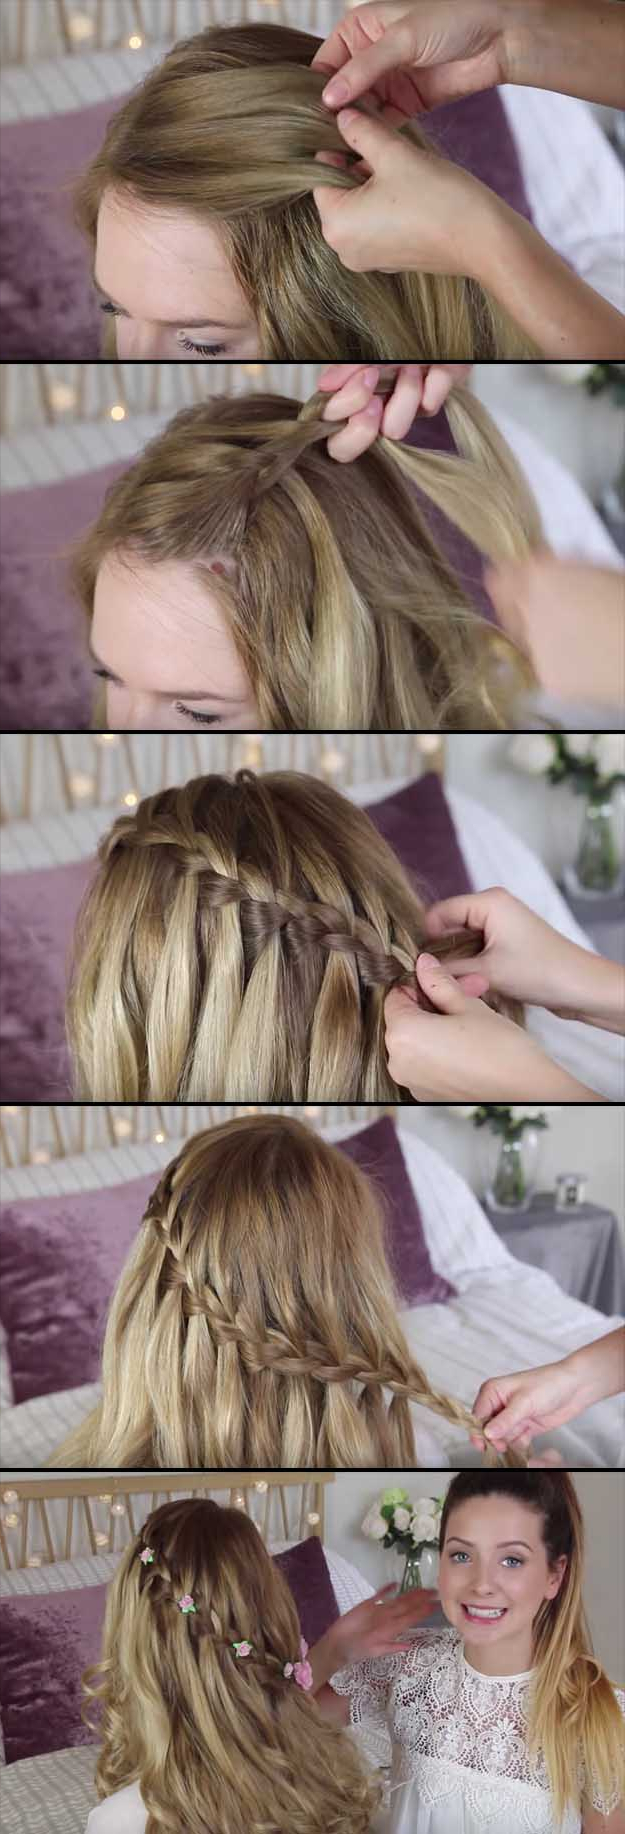 24 Beautiful Bridesmaid Hairstyles For Any Wedding – The Goddess Throughout Short Hairstyles For Weddings For Bridesmaids (View 3 of 25)